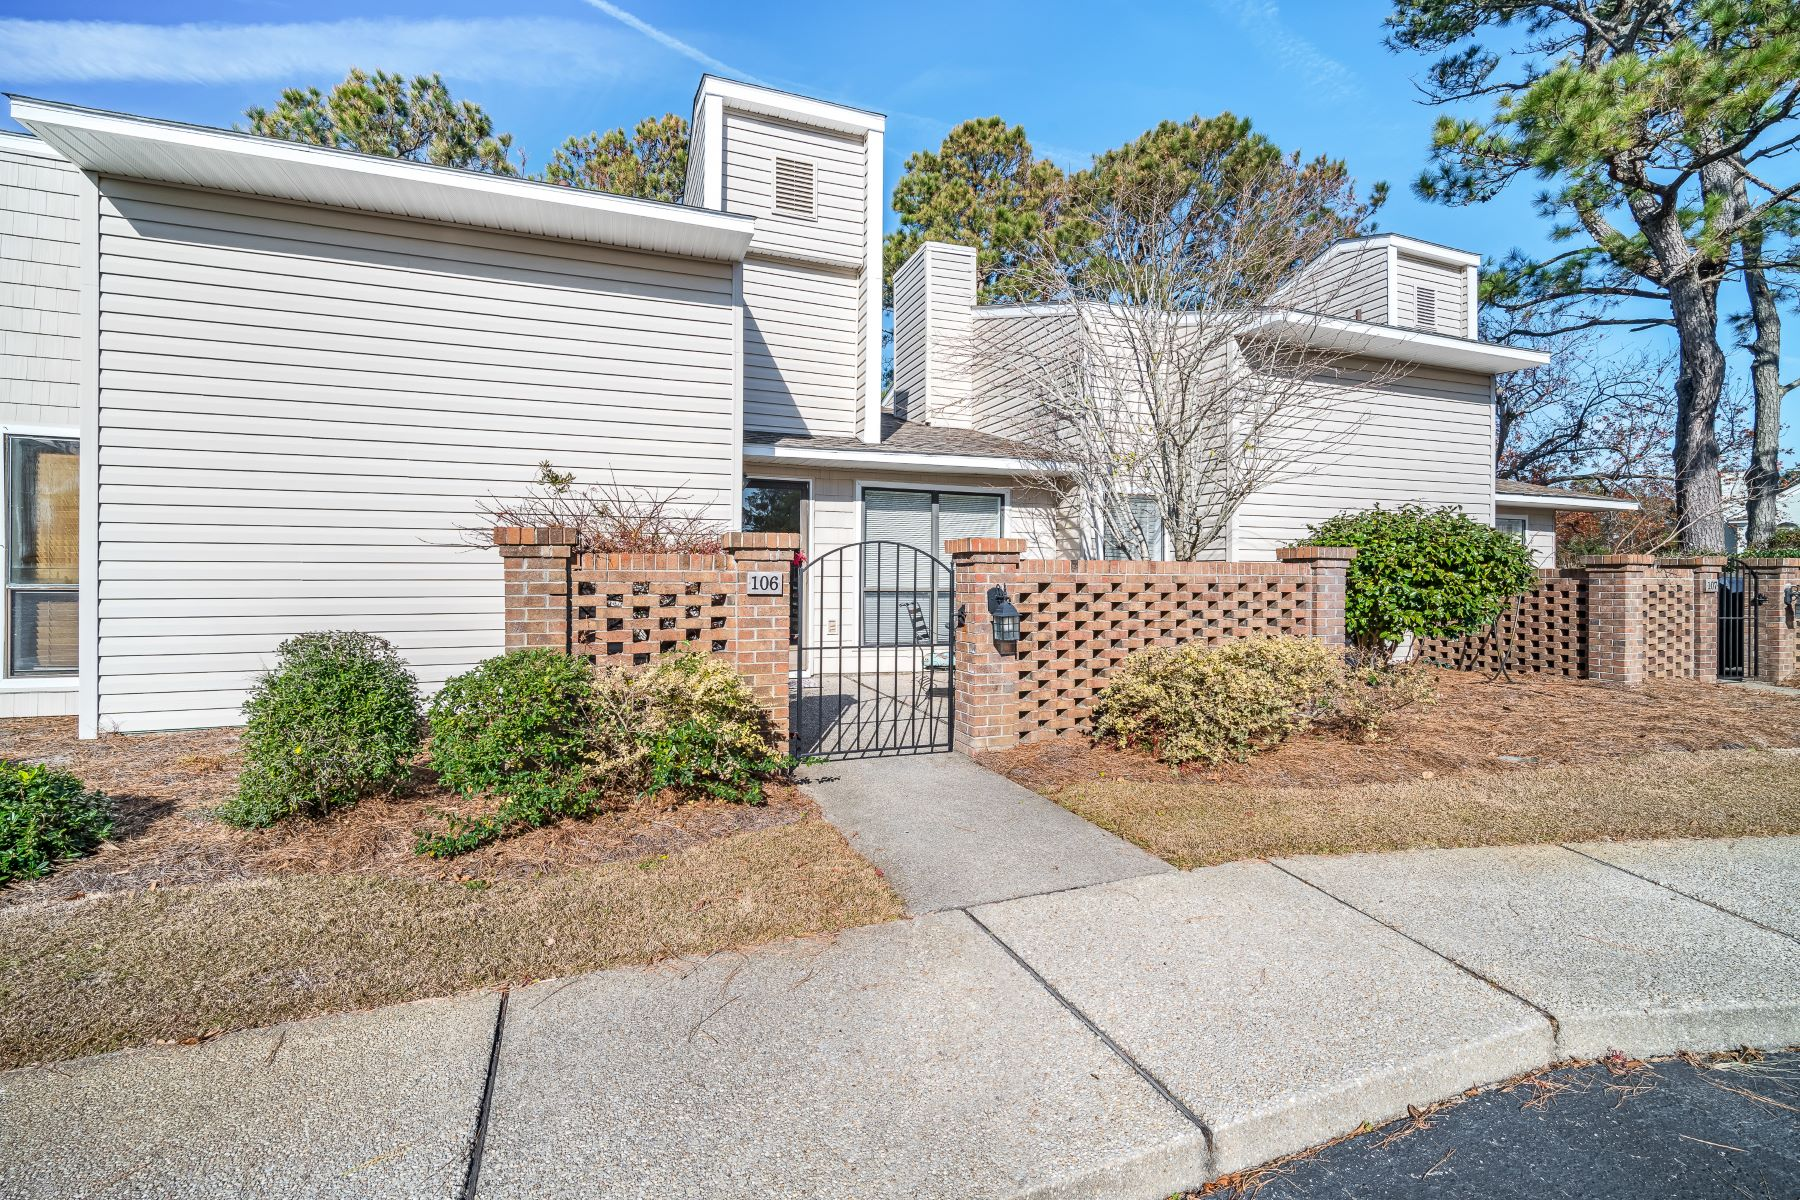 Single Family Home for Active at Beautiful Townhome in Great Neighborhood 106 Bay Court Unit 106 Morehead City, North Carolina 28557 United States